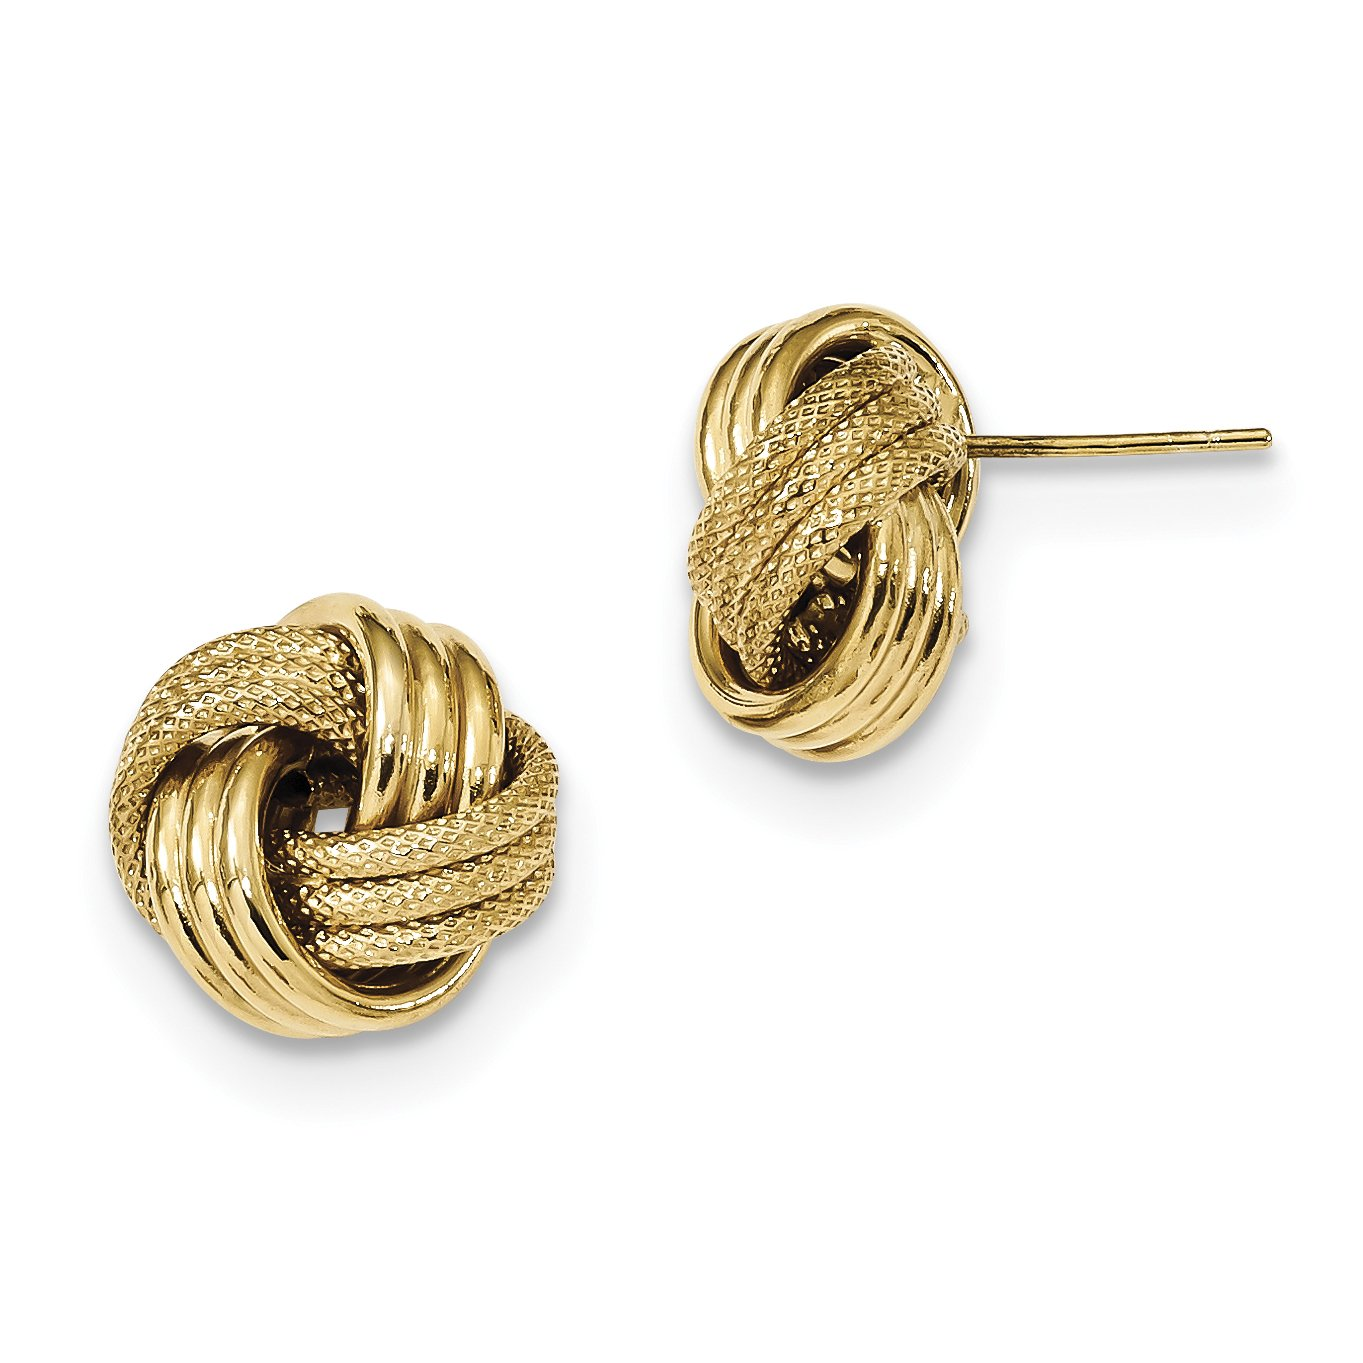 ICE CARATS 14k Yellow Gold Textured Triple Love Knot Post Stud Ball Button Earrings Fine Jewelry Gift Set For Women Heart